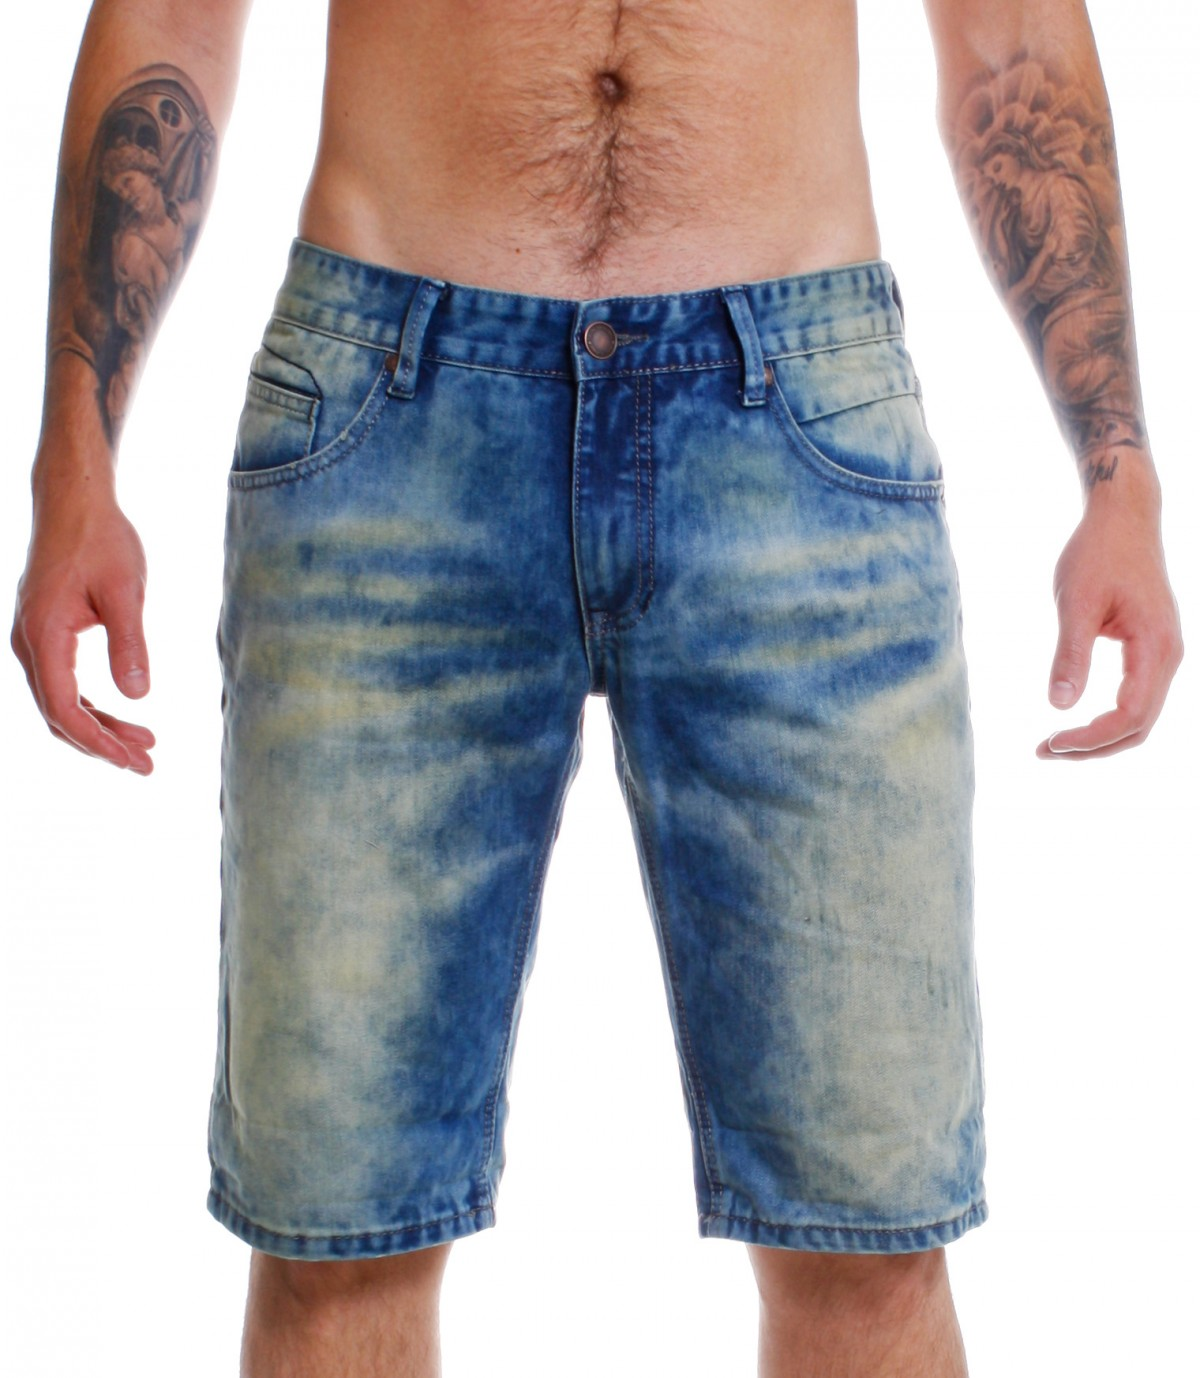 shine original herren denim jeans shorts 2 55028ato blau vintage capri hose kurz ebay. Black Bedroom Furniture Sets. Home Design Ideas